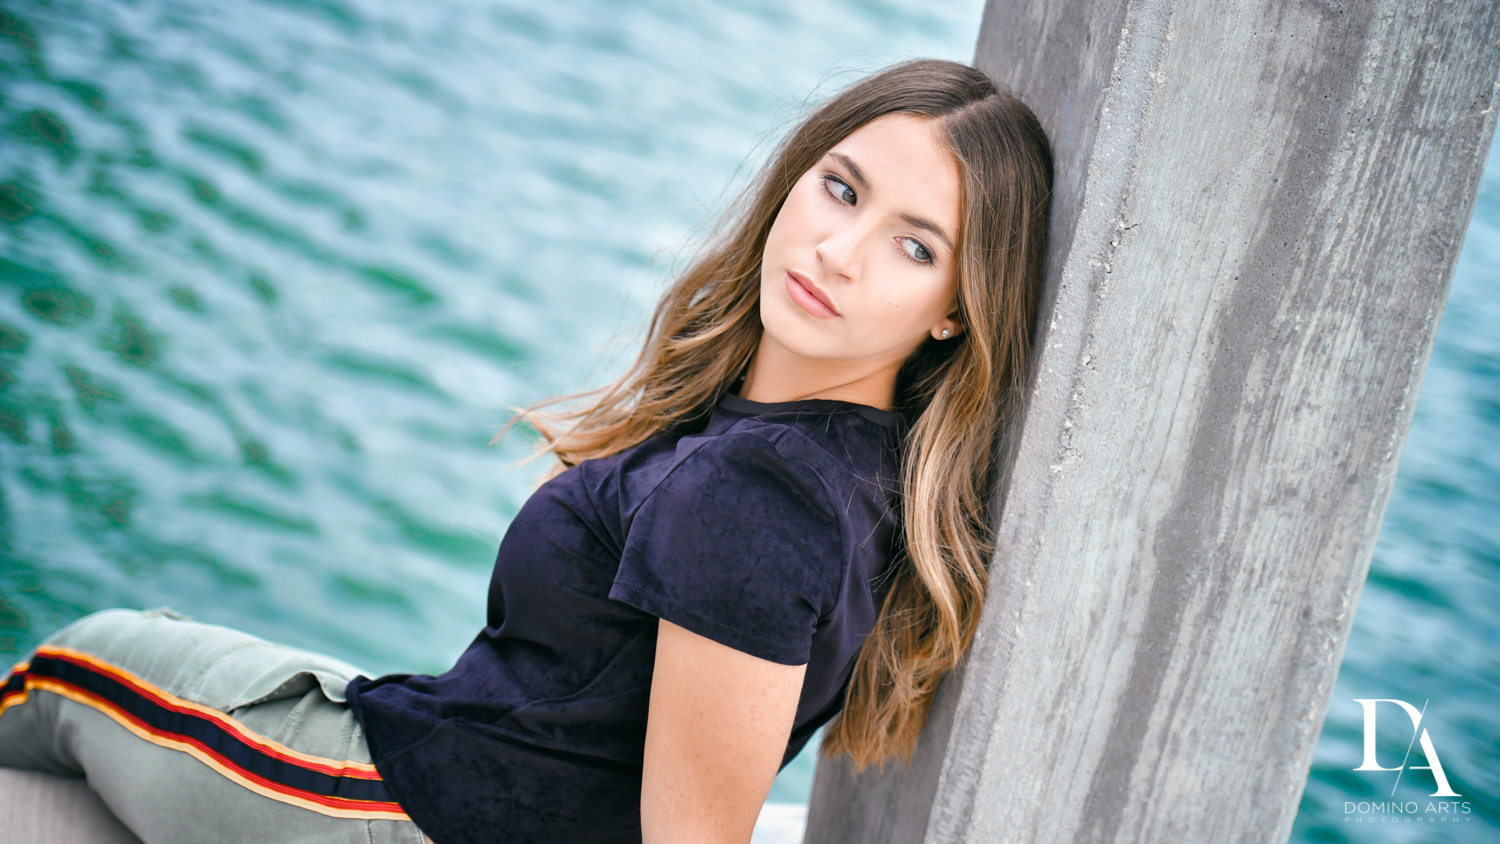 Waterfront Photo Session in Miami by Domino Arts Photography